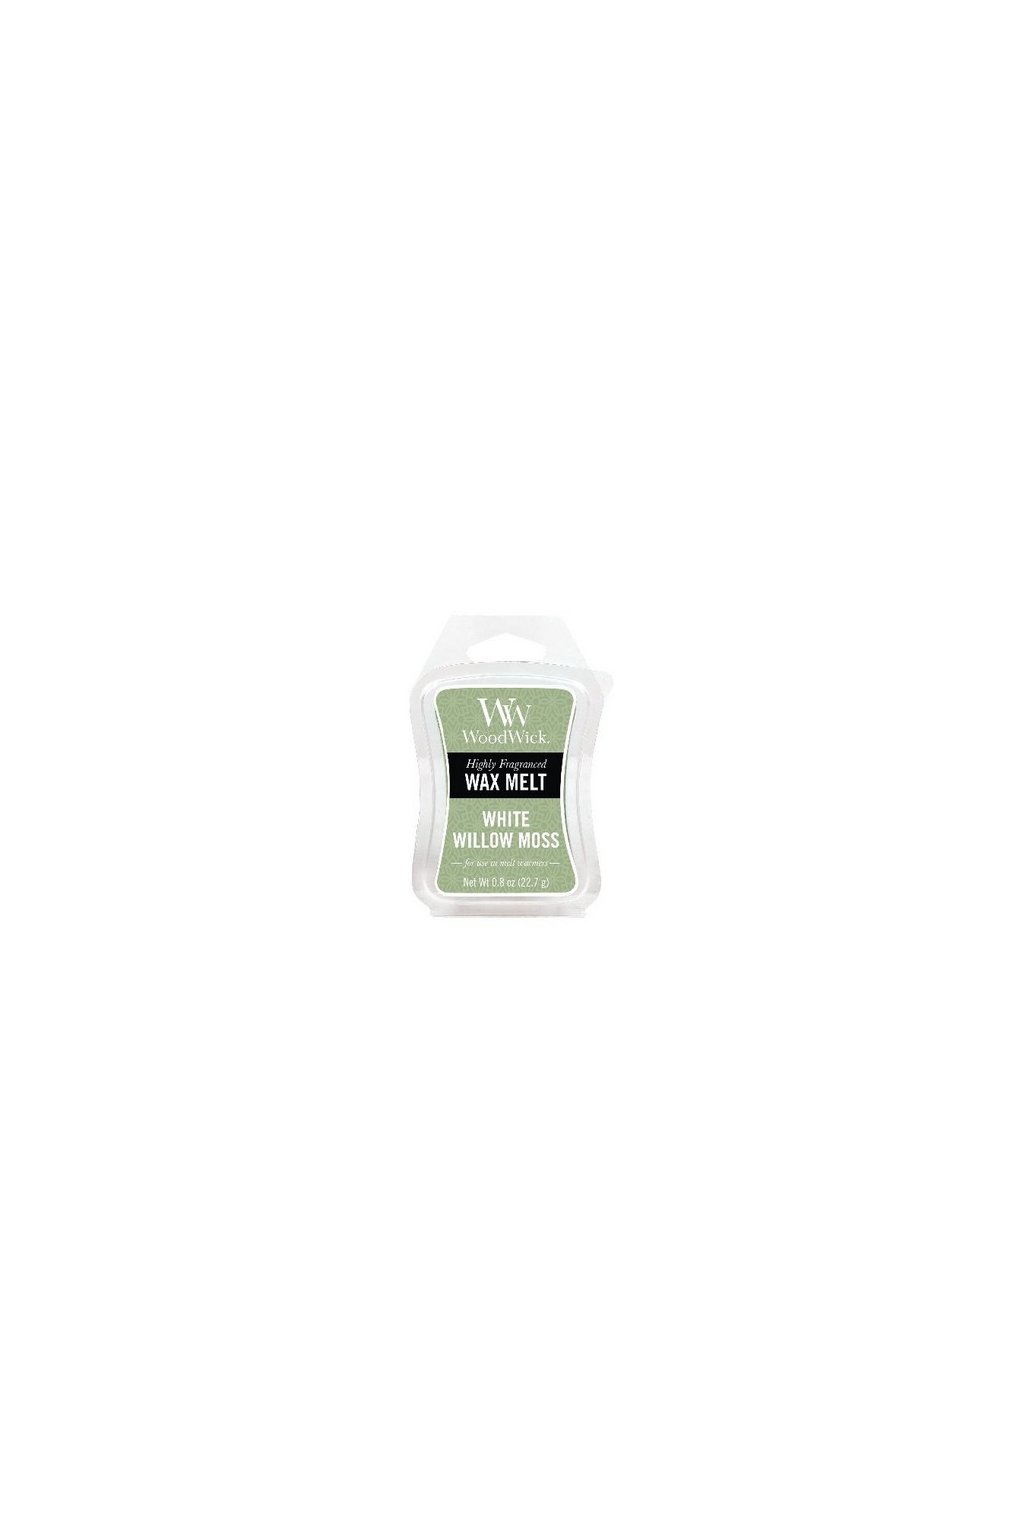 WoodWick White Willow Moss vonný vosk 22g